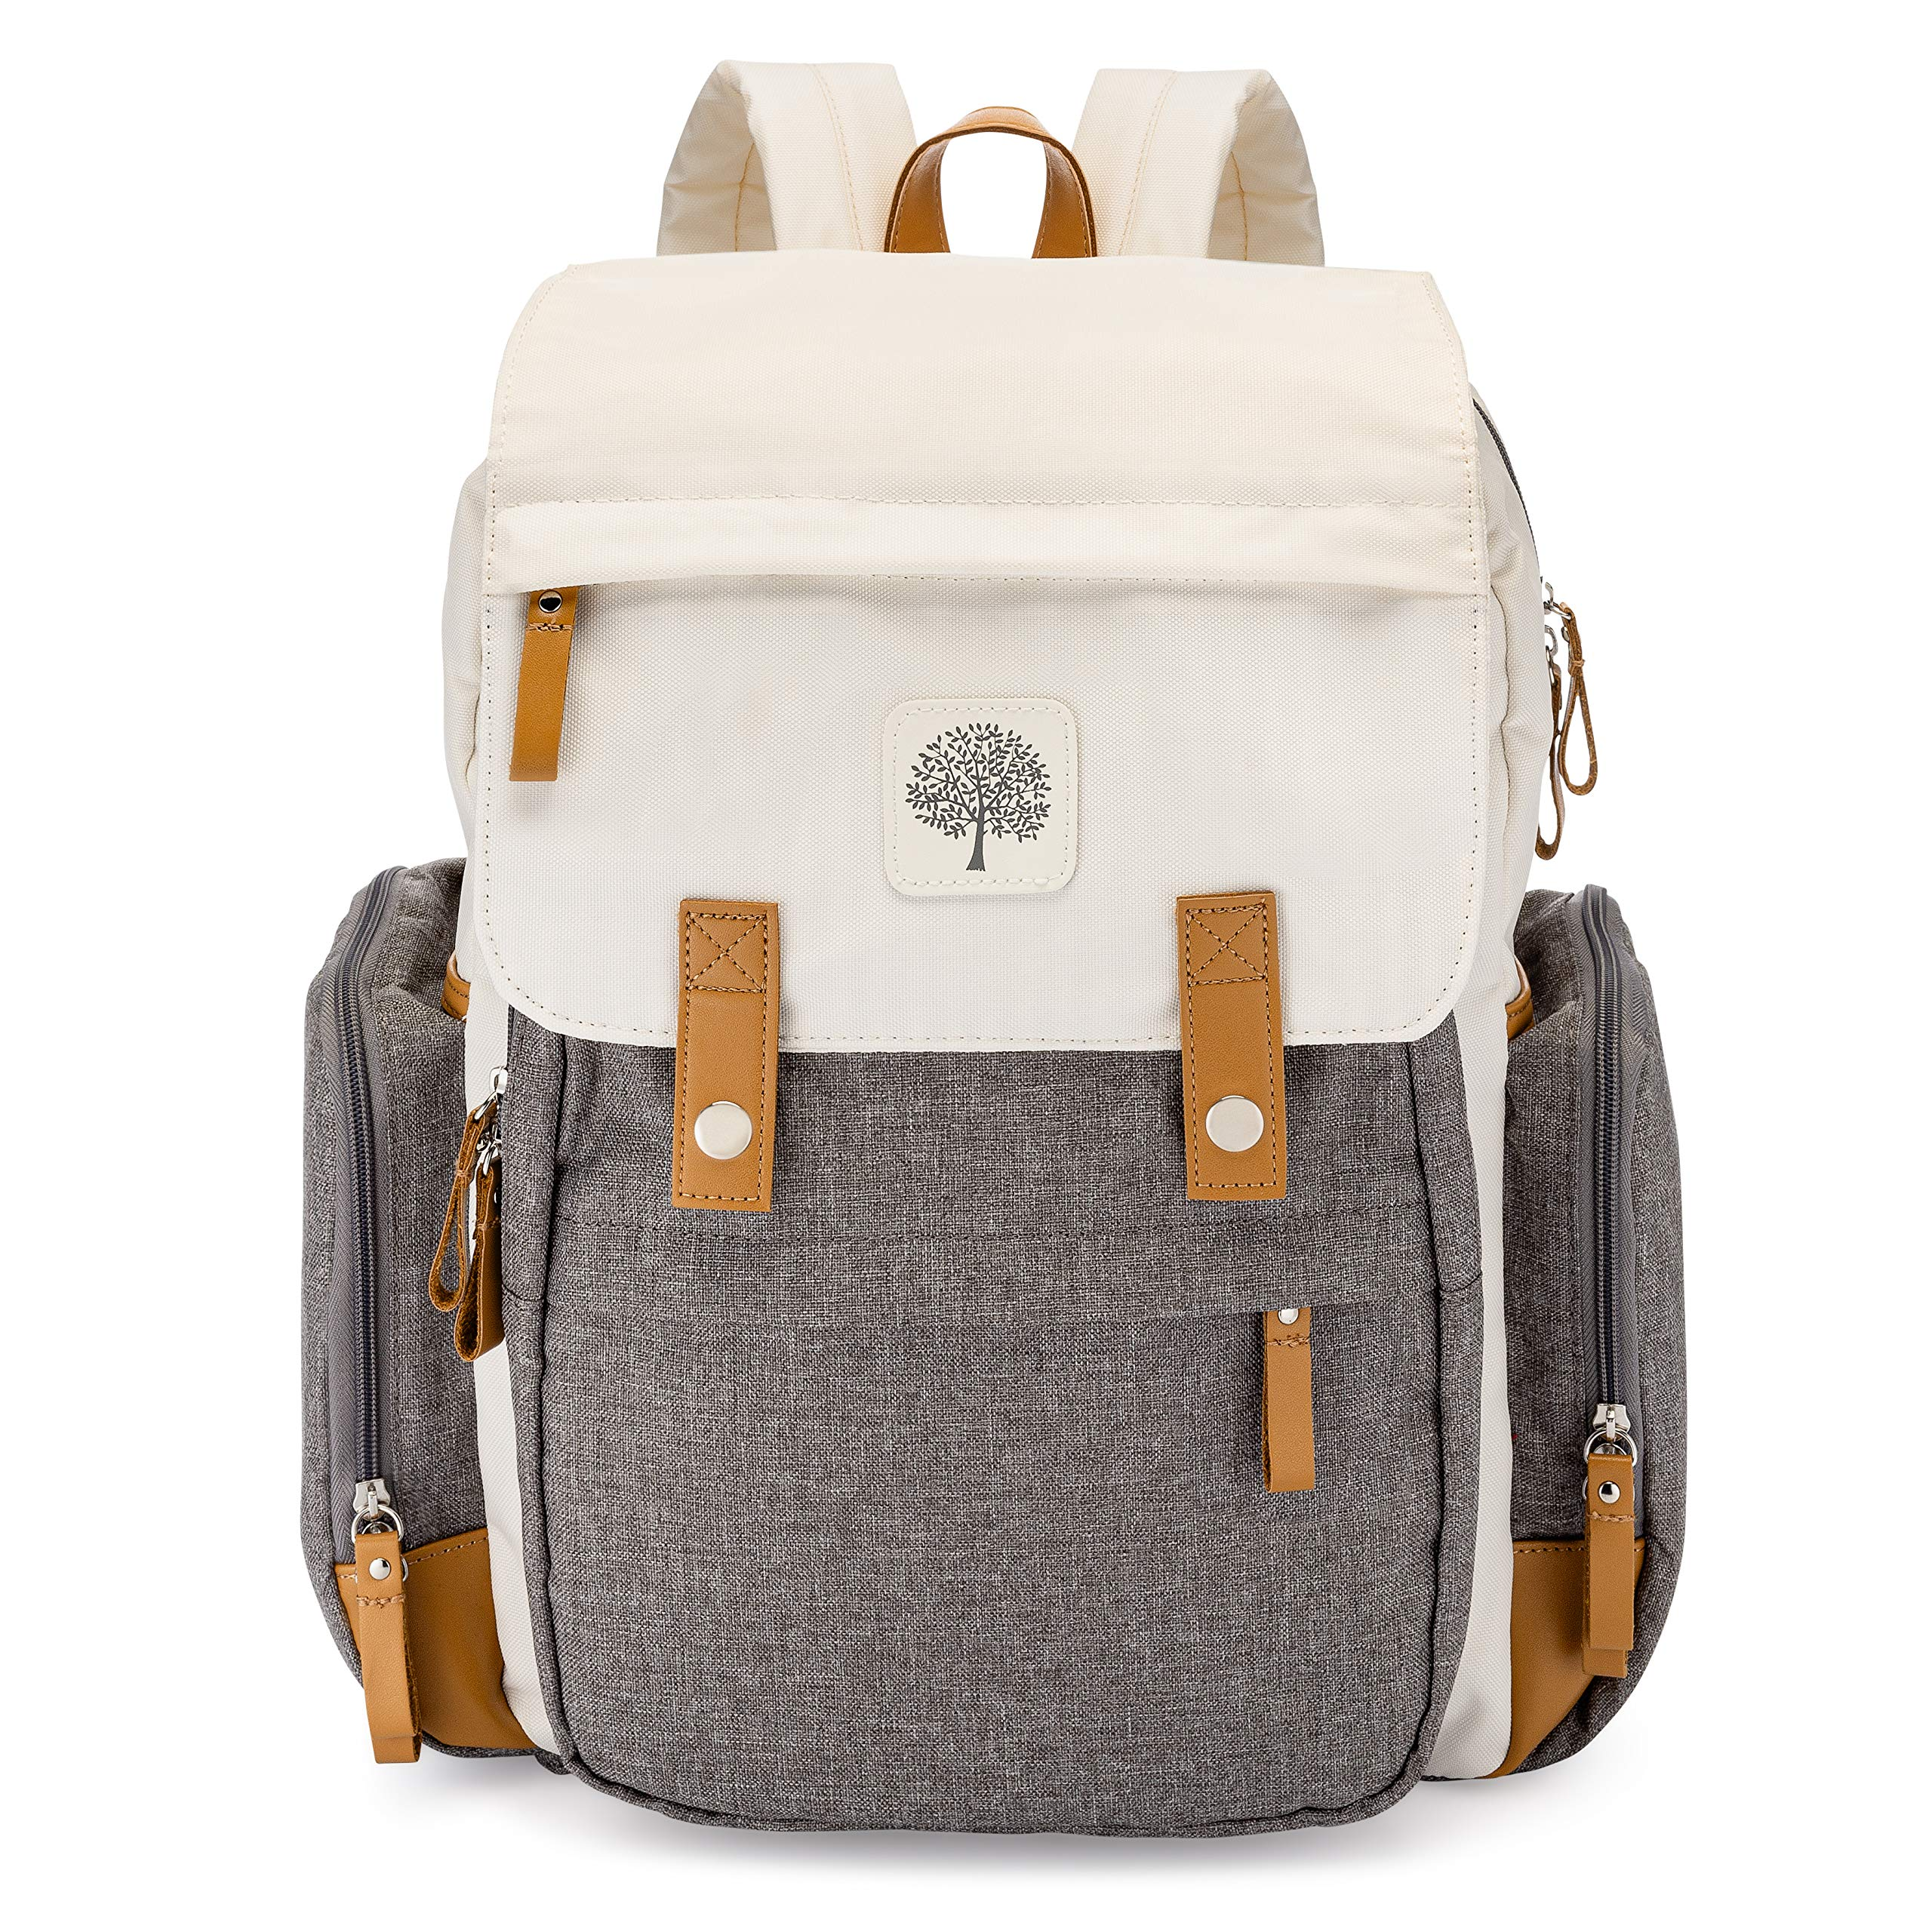 Parker Baby Diaper Backpack - Large Diaper Bag with Insulated Pockets, Stroller Straps and Changing Pad -''Birch Bag'' - Cream by Parker Baby Co.